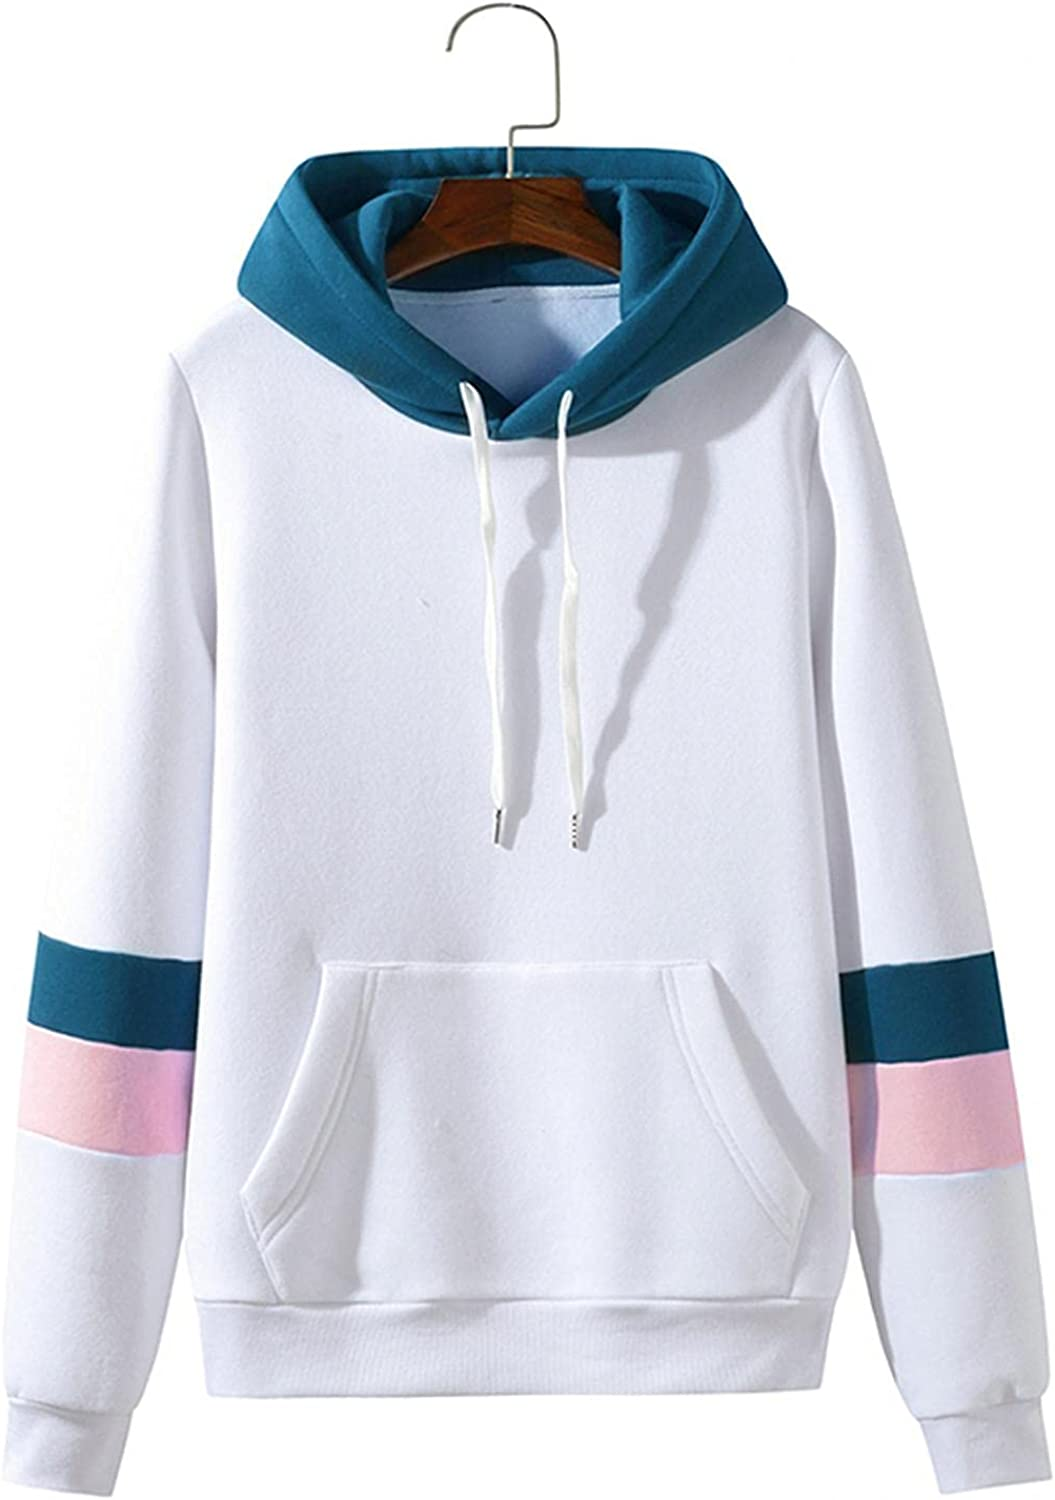 WoCoo Mens Hooded Sweatshirts Hipster Patchwork Drawstring Pullover for Unisex Casual Lightweight Hoodie Shirts